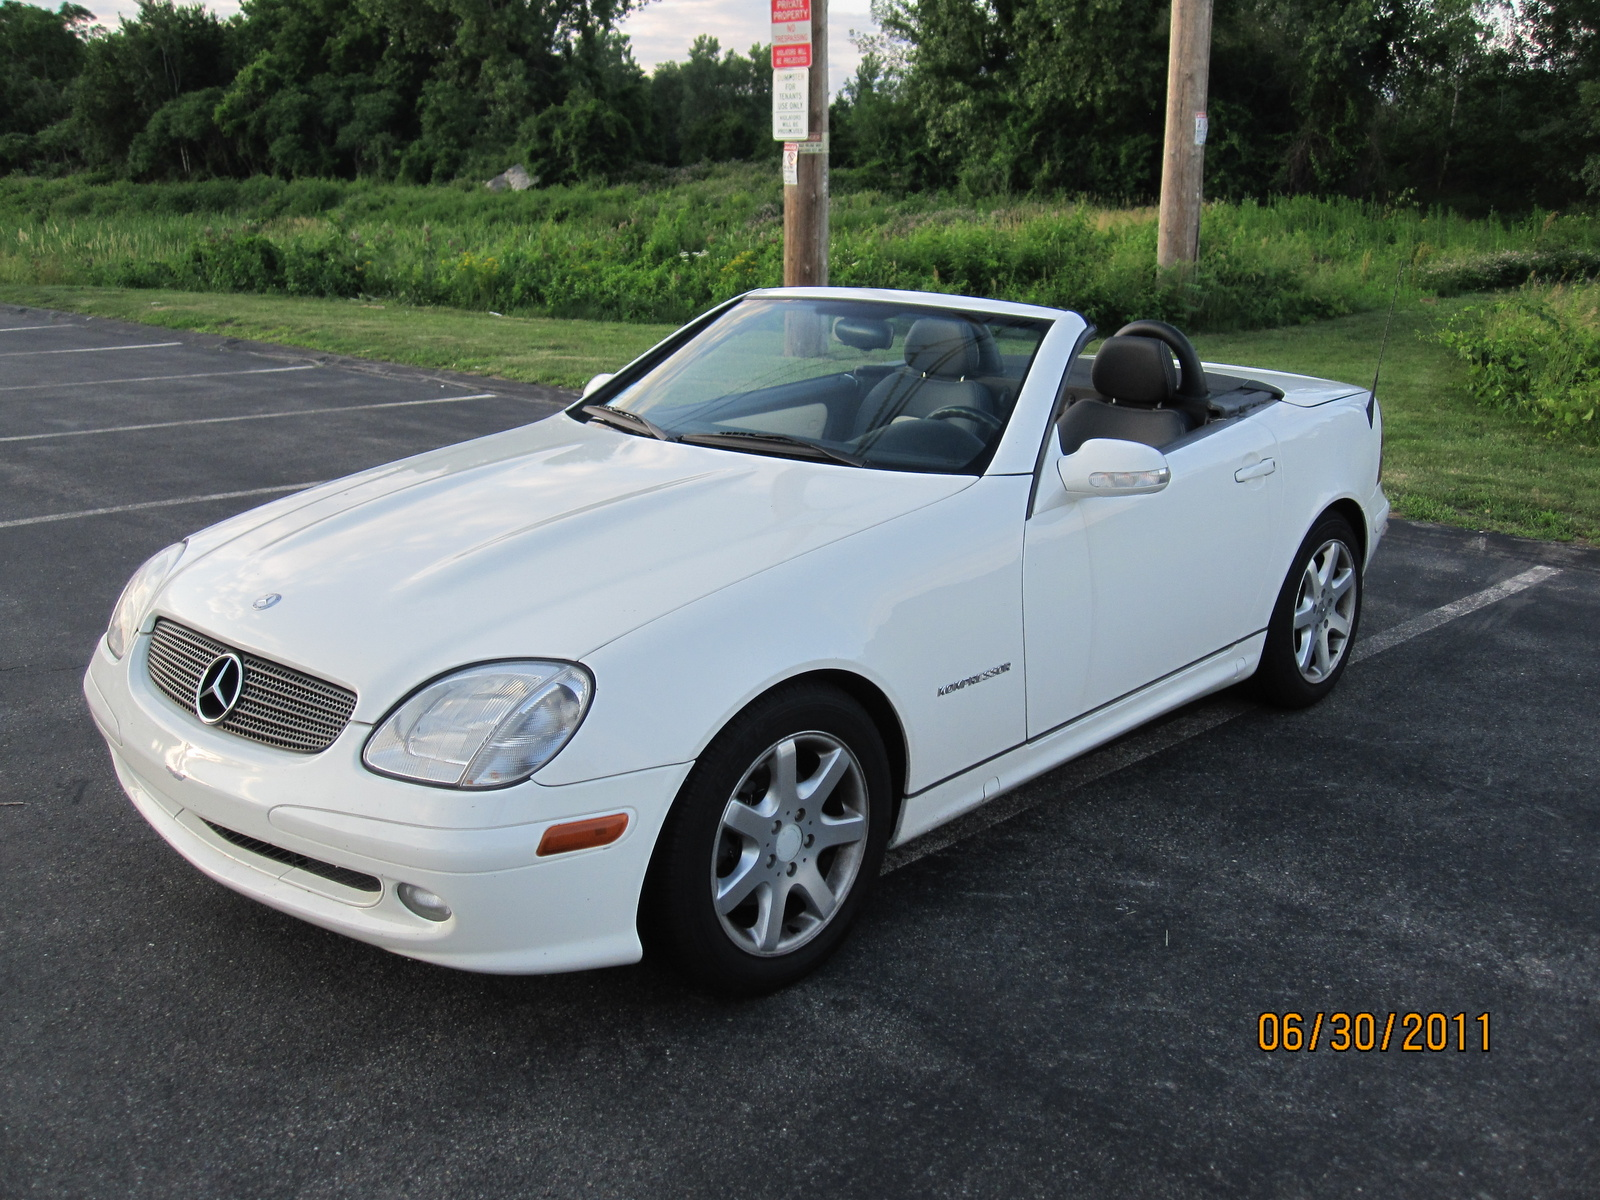 2003 mercedes benz slk class pictures cargurus for Mercedes benz slk230